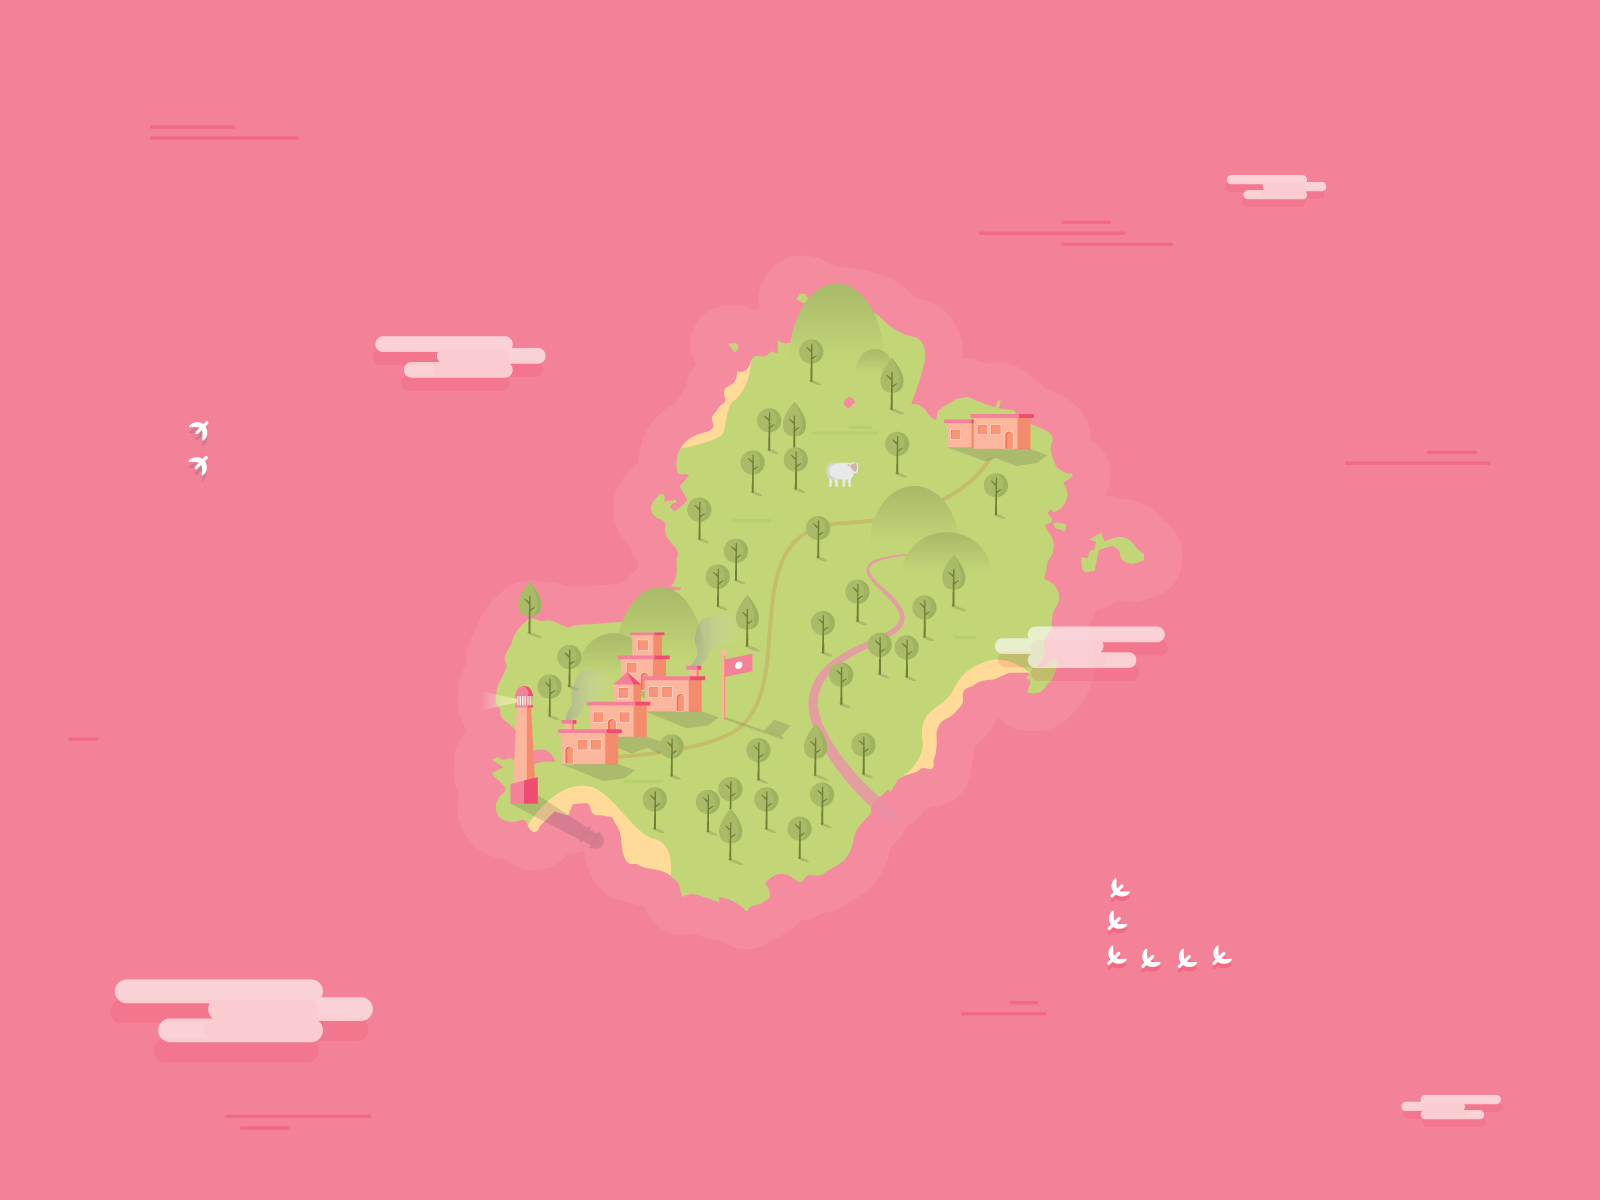 pink_map.png